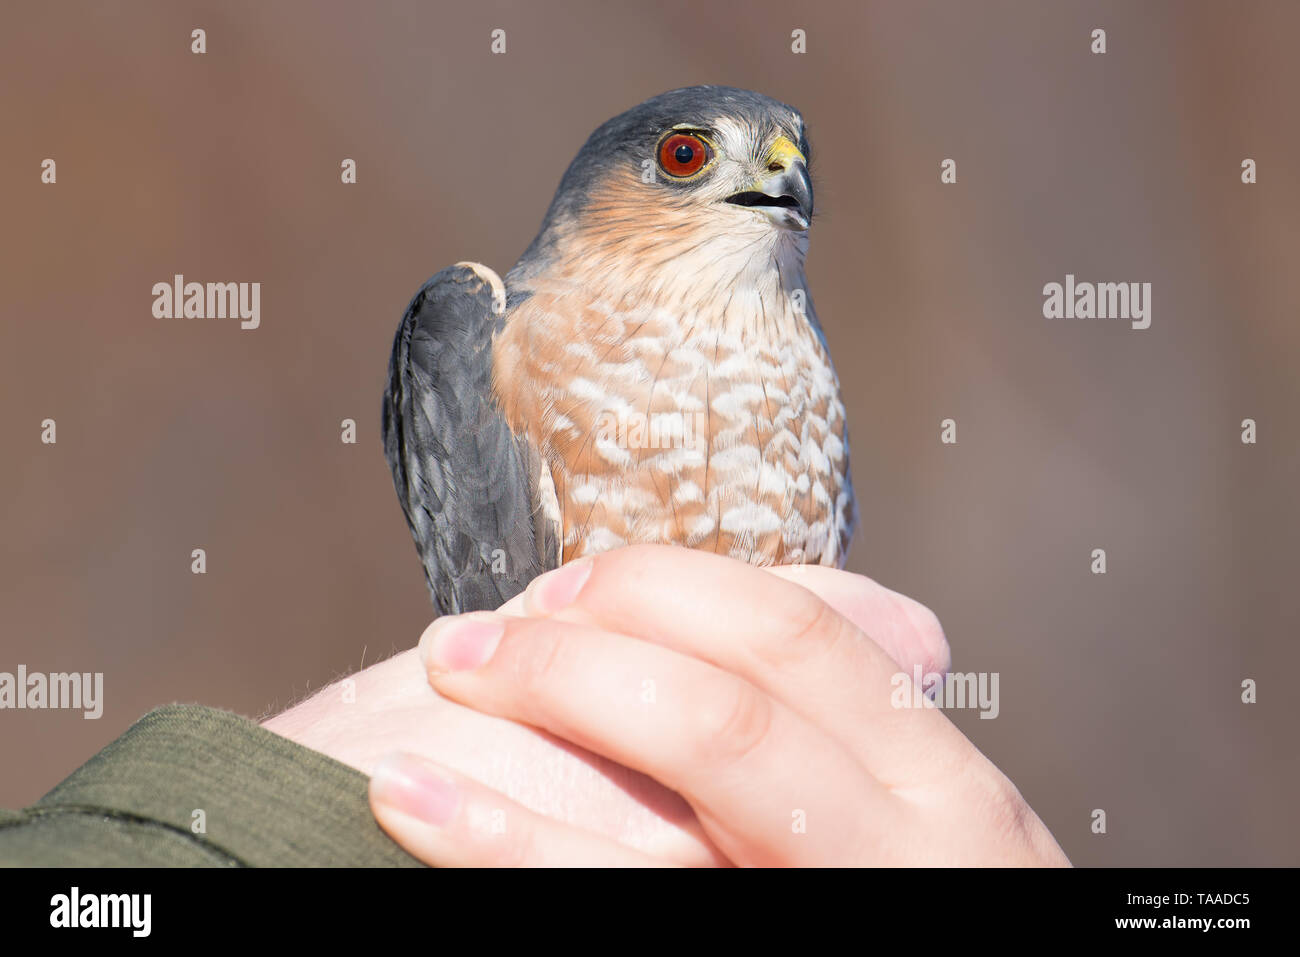 Sharp-shinned adult hawk portrait while being held after getting mist netted - released after data taken - at Hawk Ridge Bird Observatory in Duluth, M - Stock Image